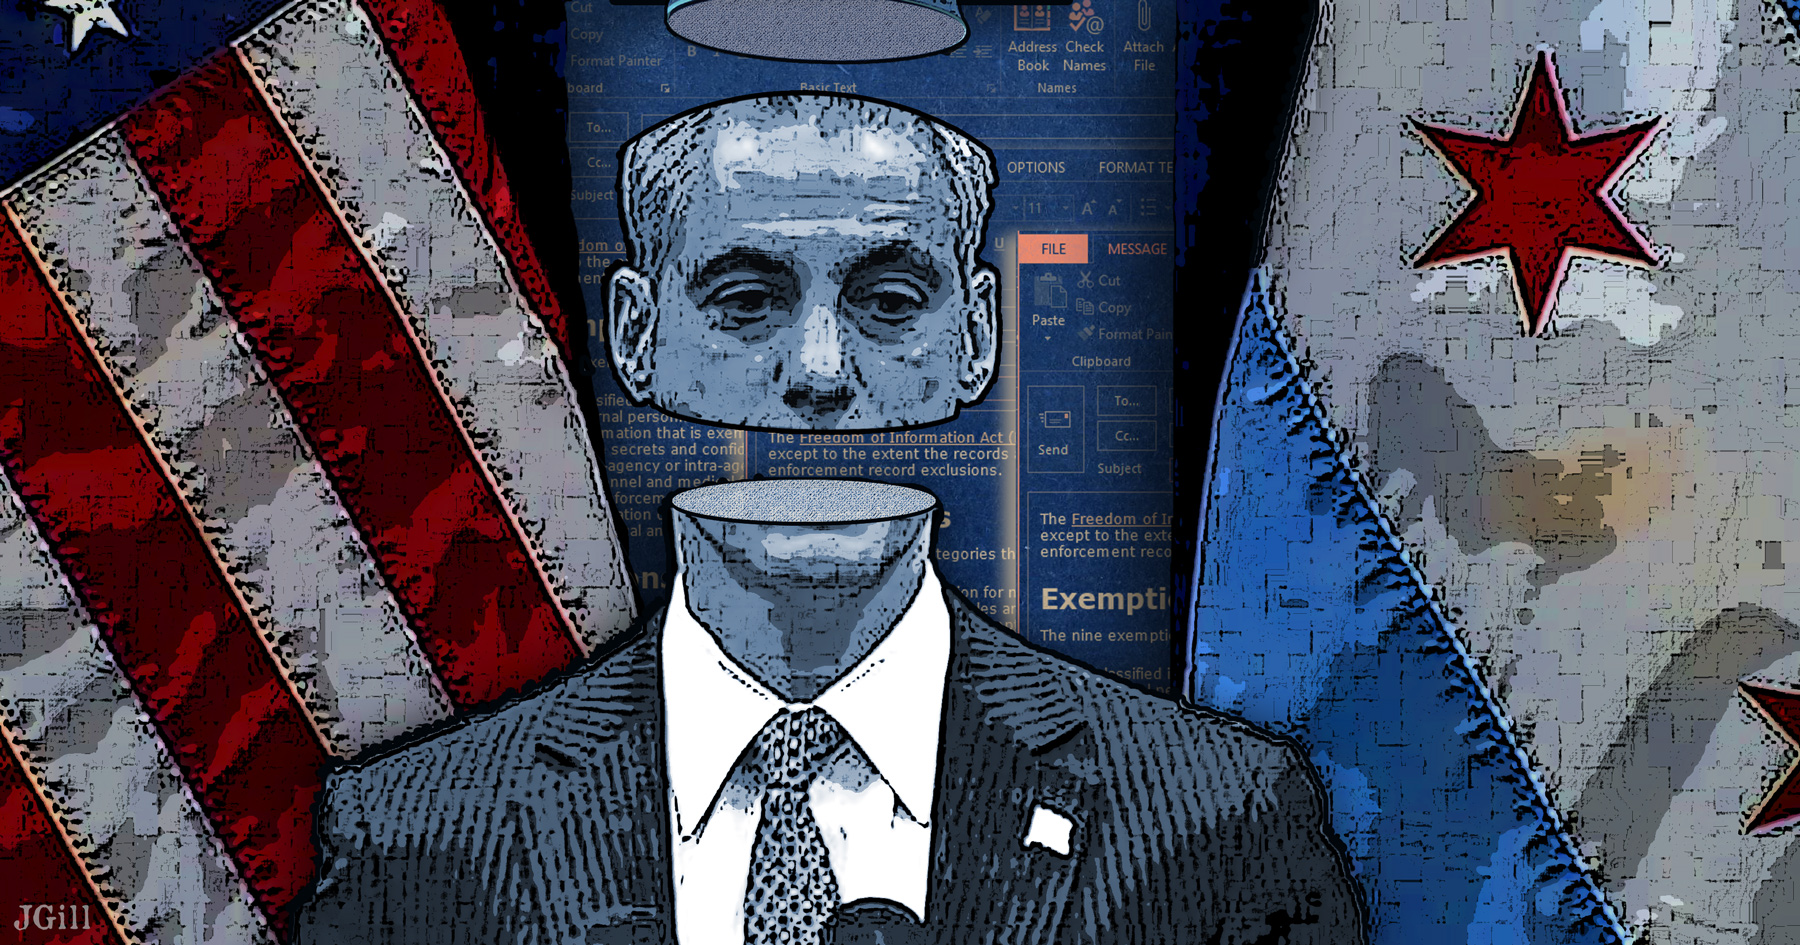 Rahm Emanuel, Chicago Tribune, Chicago, transparency, government, collage, photomontage, JGill, Paul Jacob, Common Sense